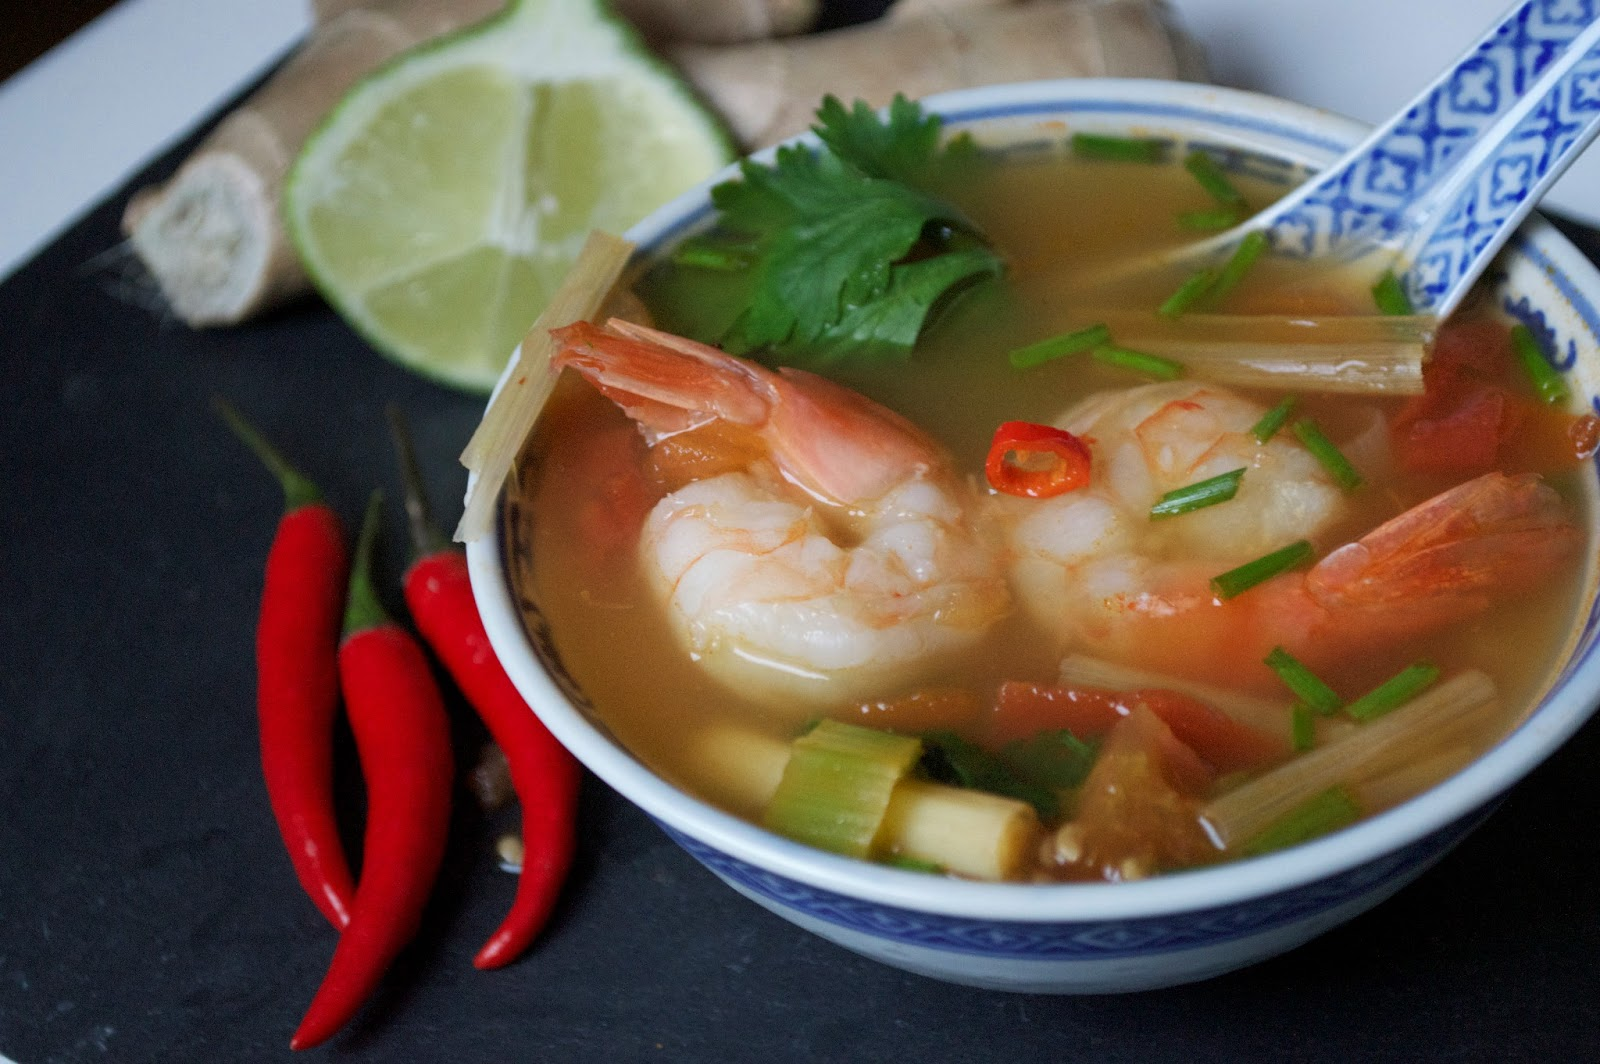 The Secrets of Living: Tom Yum Goong - Spicy Thai Soup with Shrimp and ...